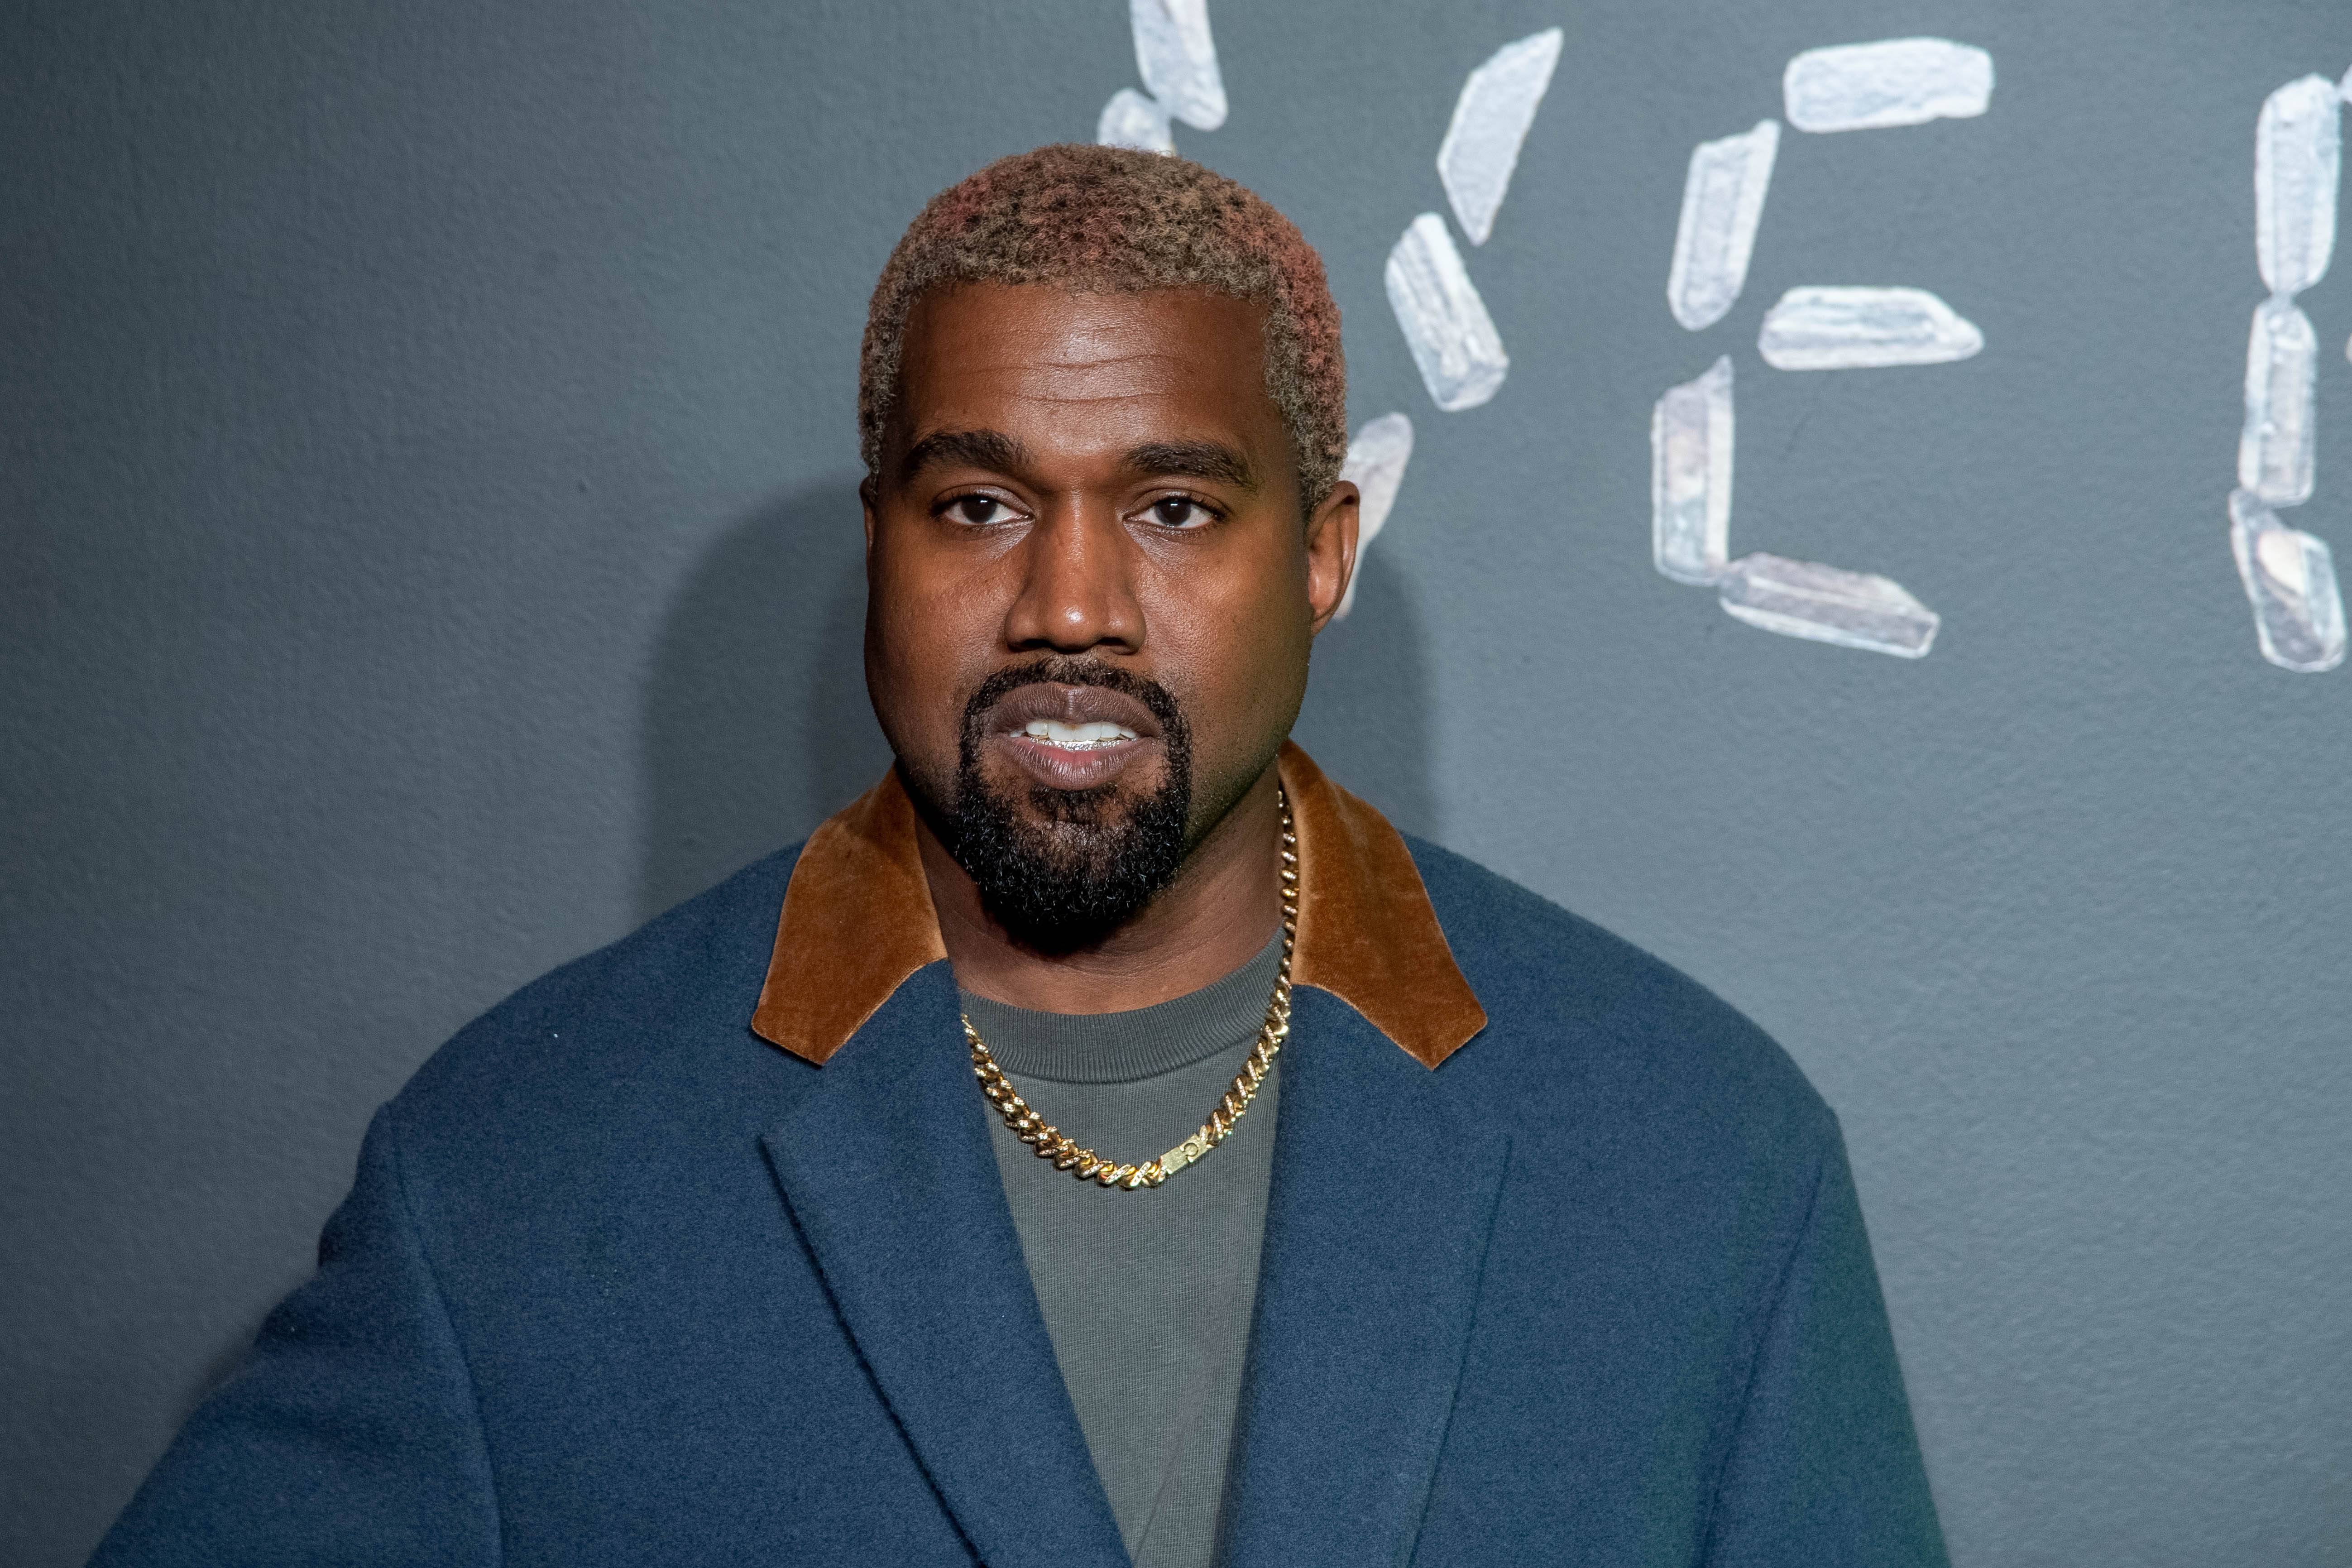 WATCH: Kanye West Stopped By Harris County Jail